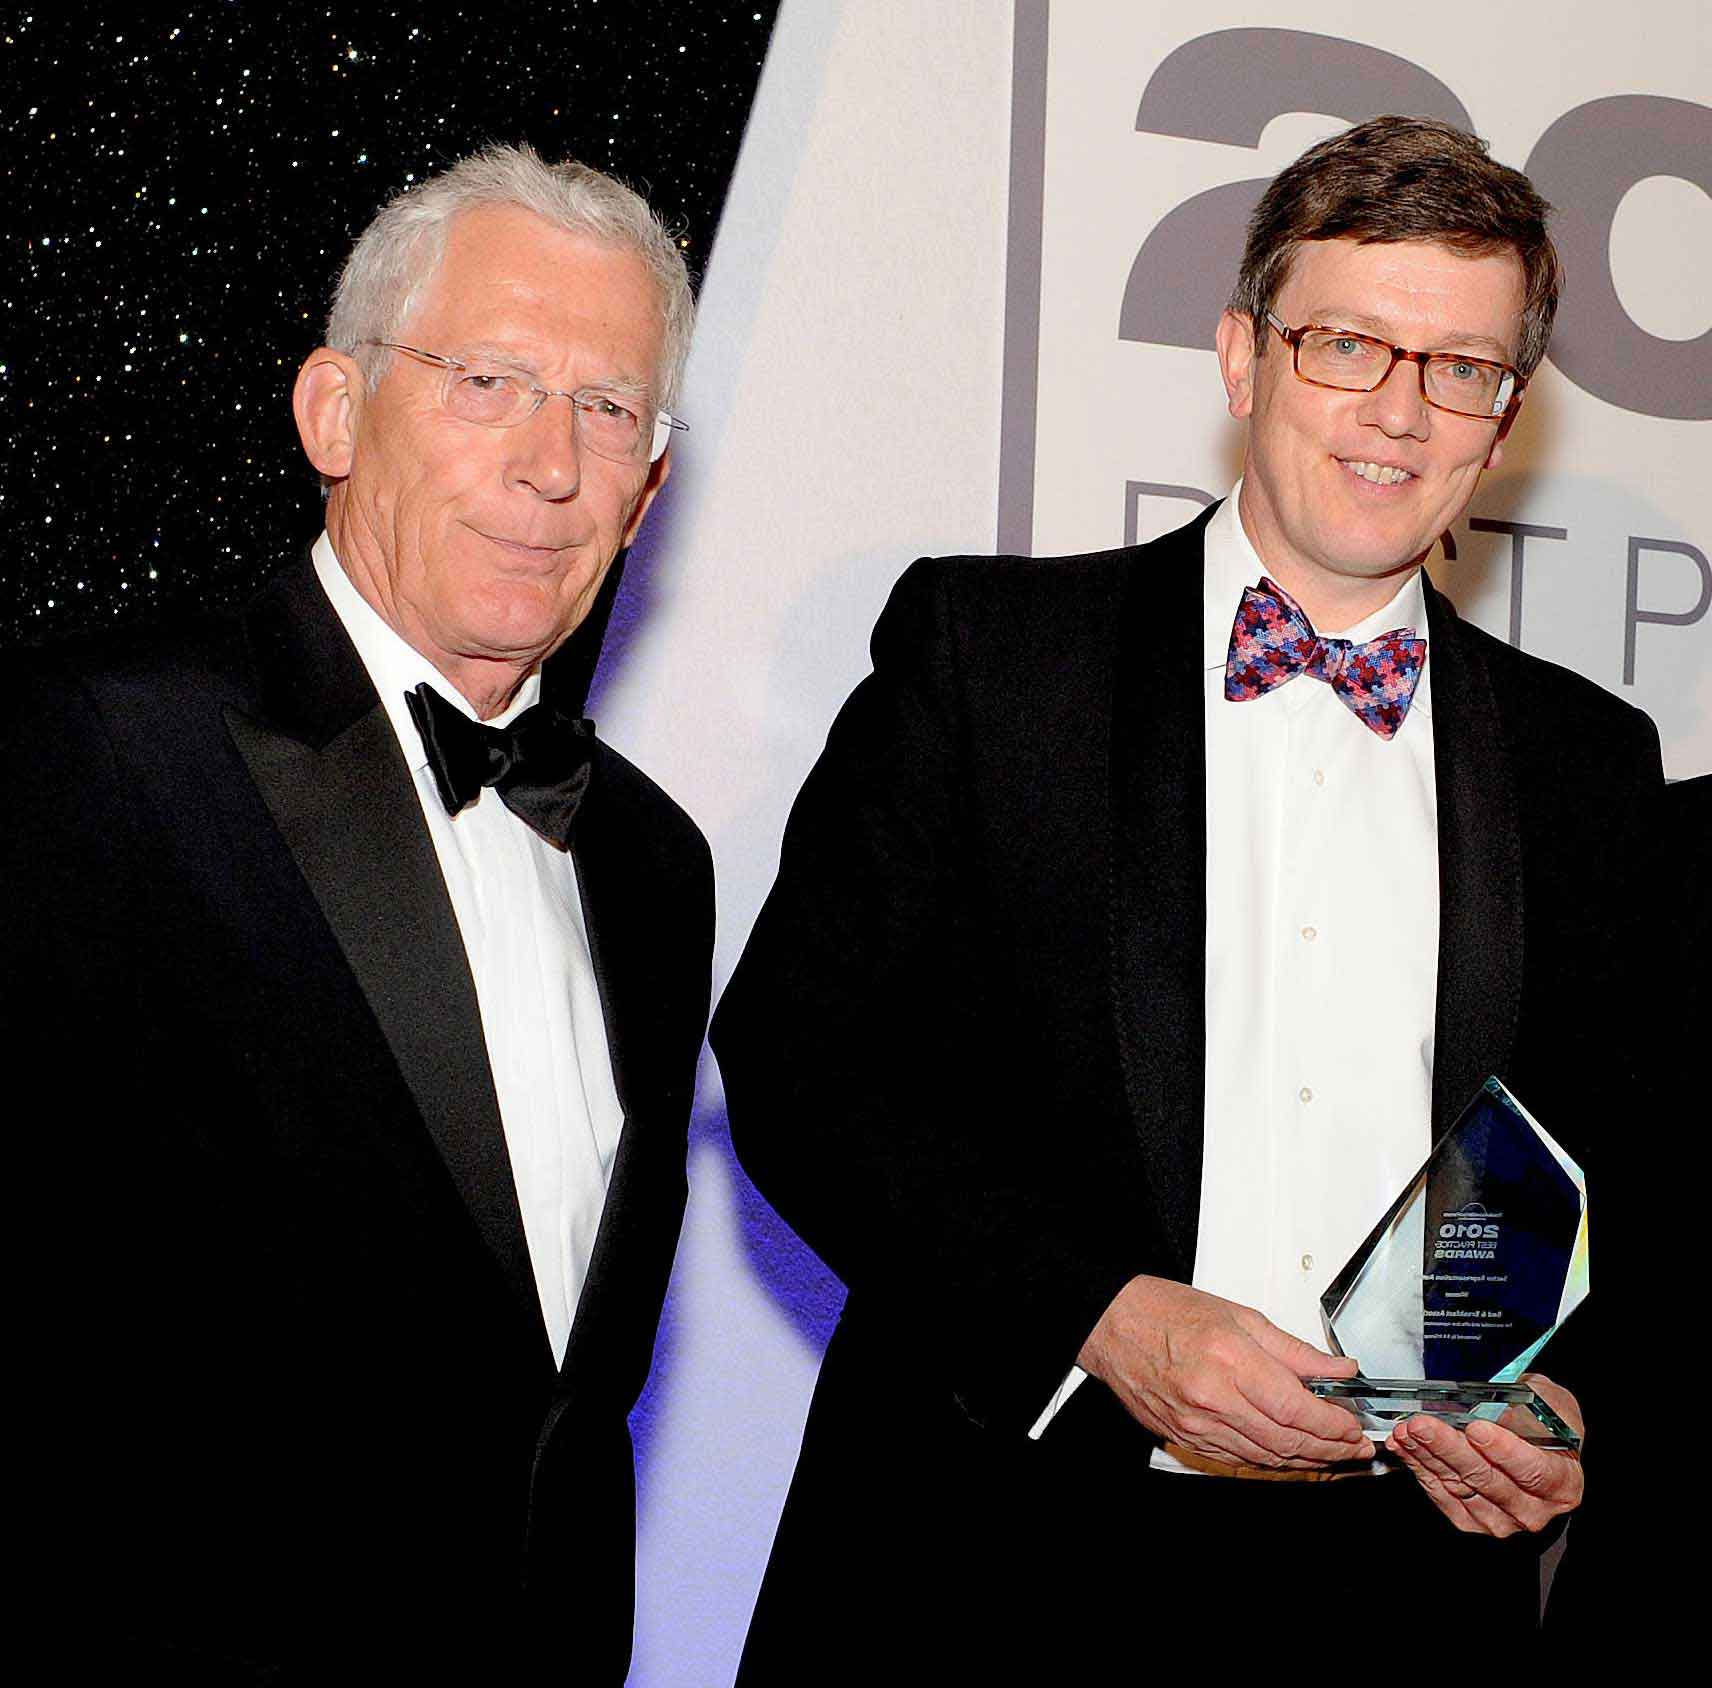 Nick Hewer and David Weston